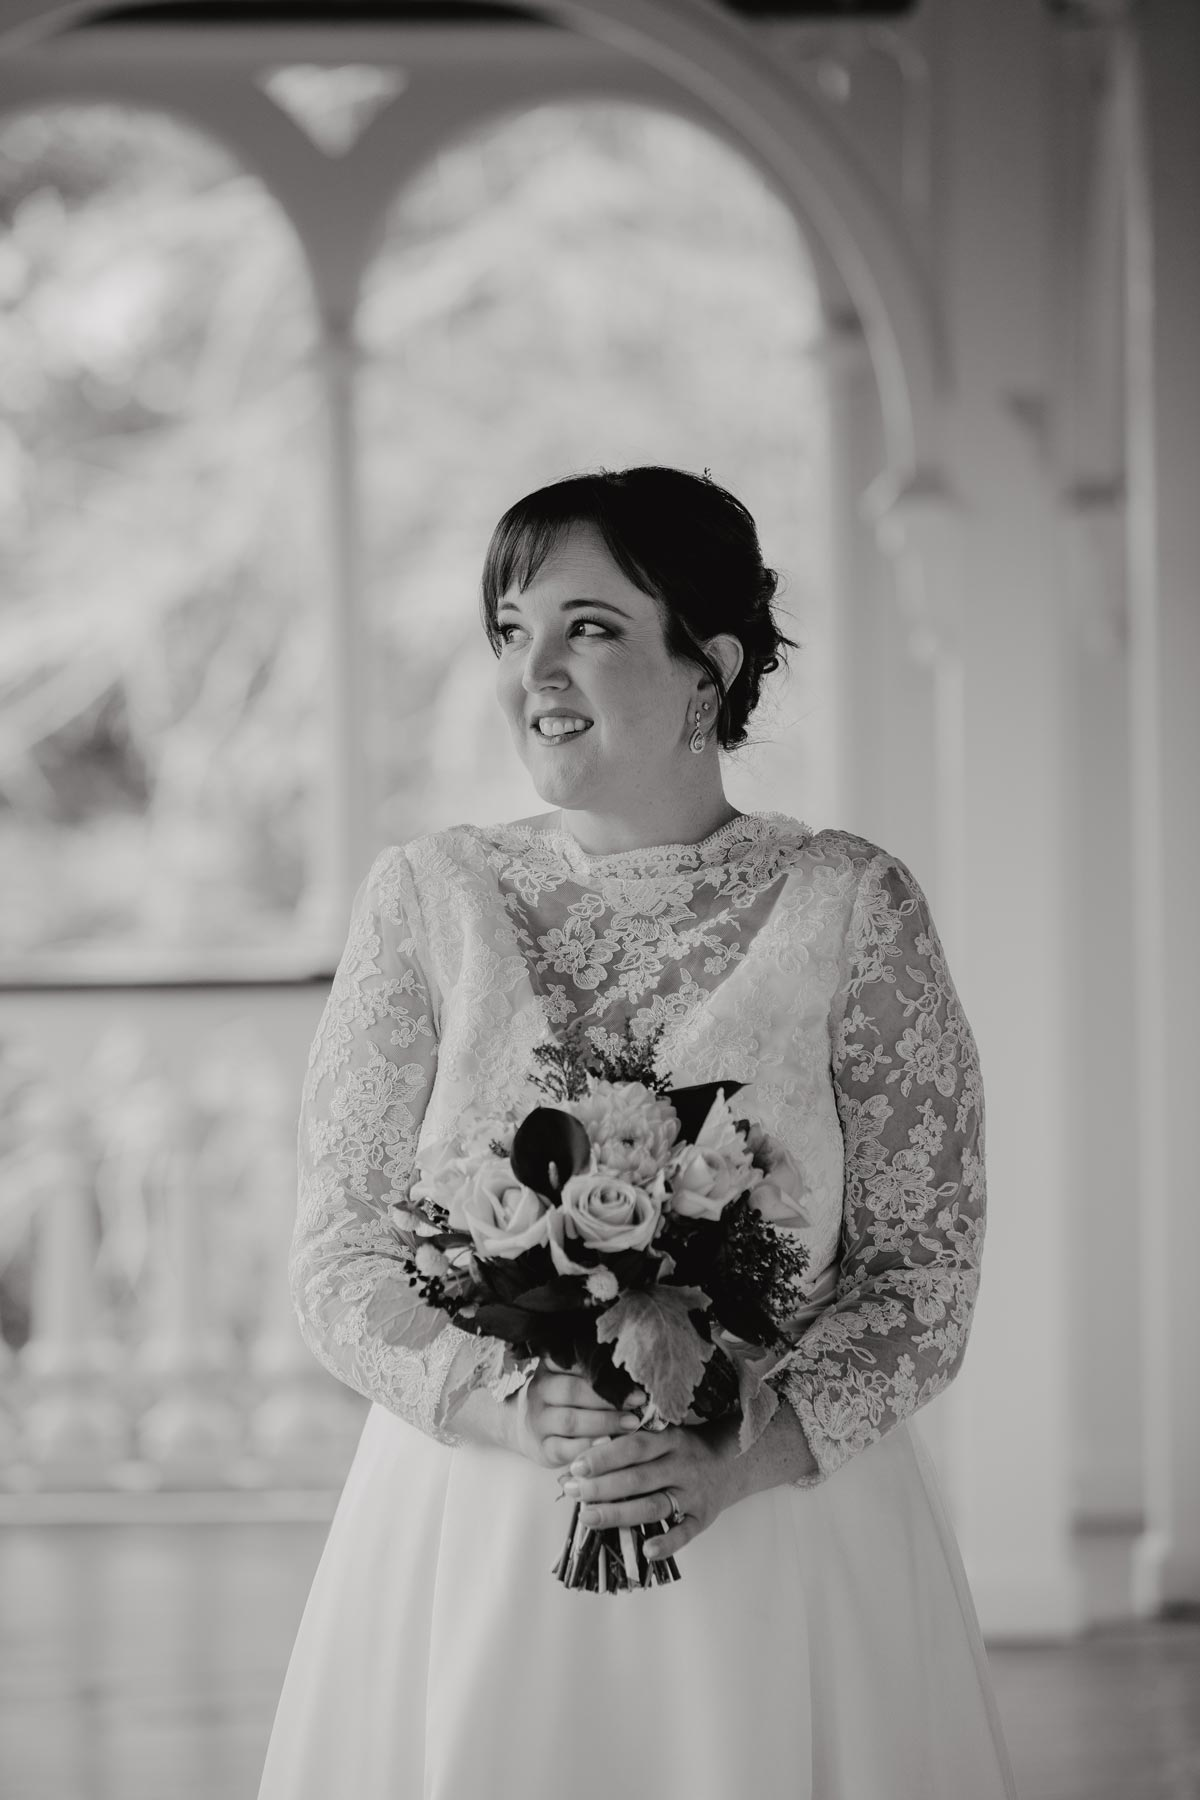 alberton auckland wedding photos bride sarah weber photography